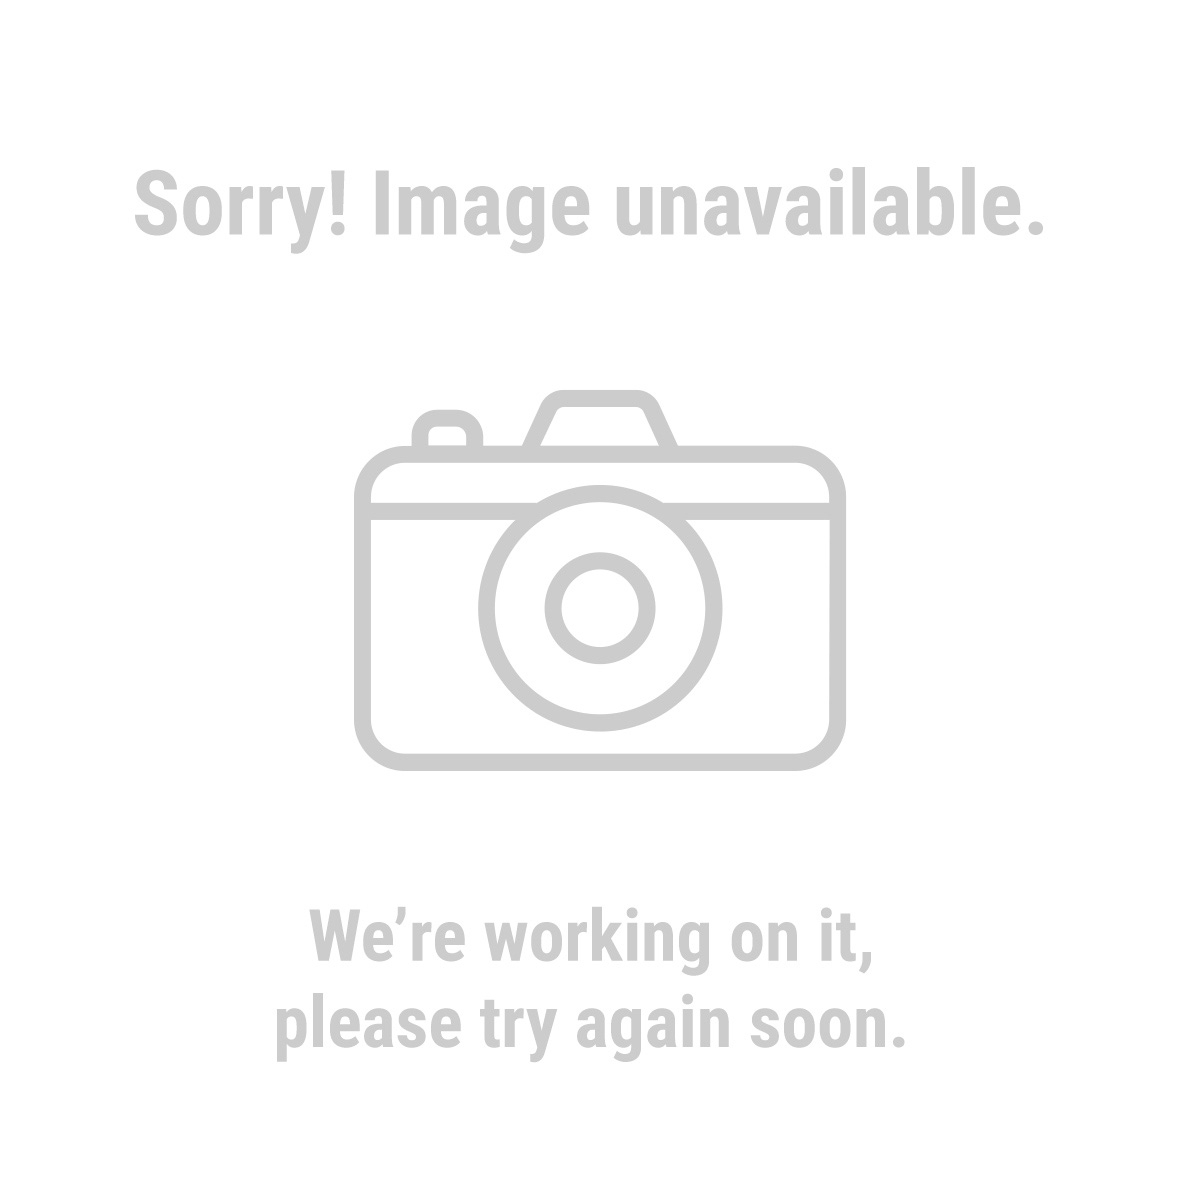 HFT 62286 10 ft. x 17 ft. Portable Garage